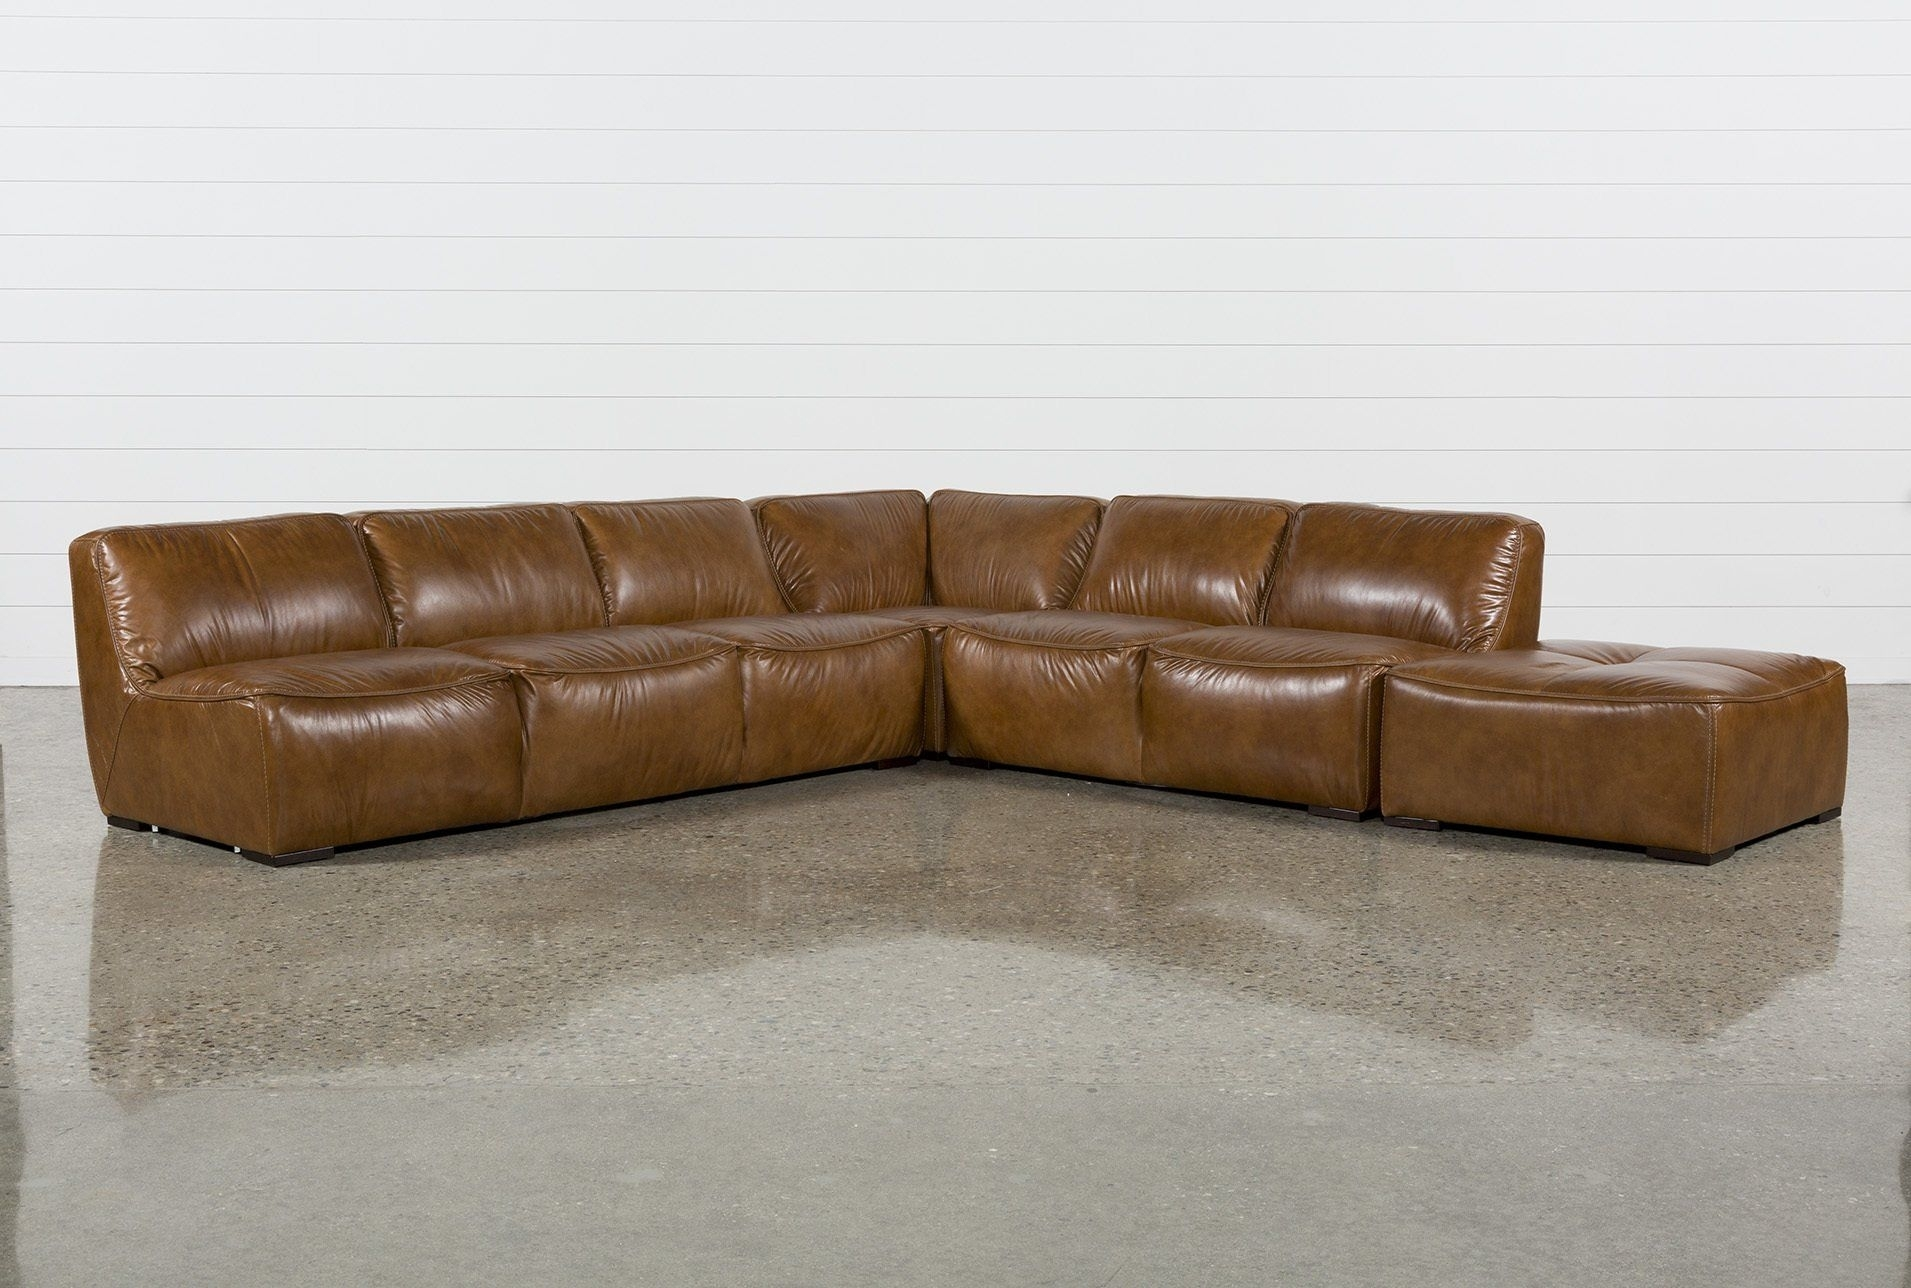 Burton Leather 3 Piece Sectional W/ottoman | Products throughout Burton Leather 3 Piece Sectionals With Ottoman (Image 4 of 30)